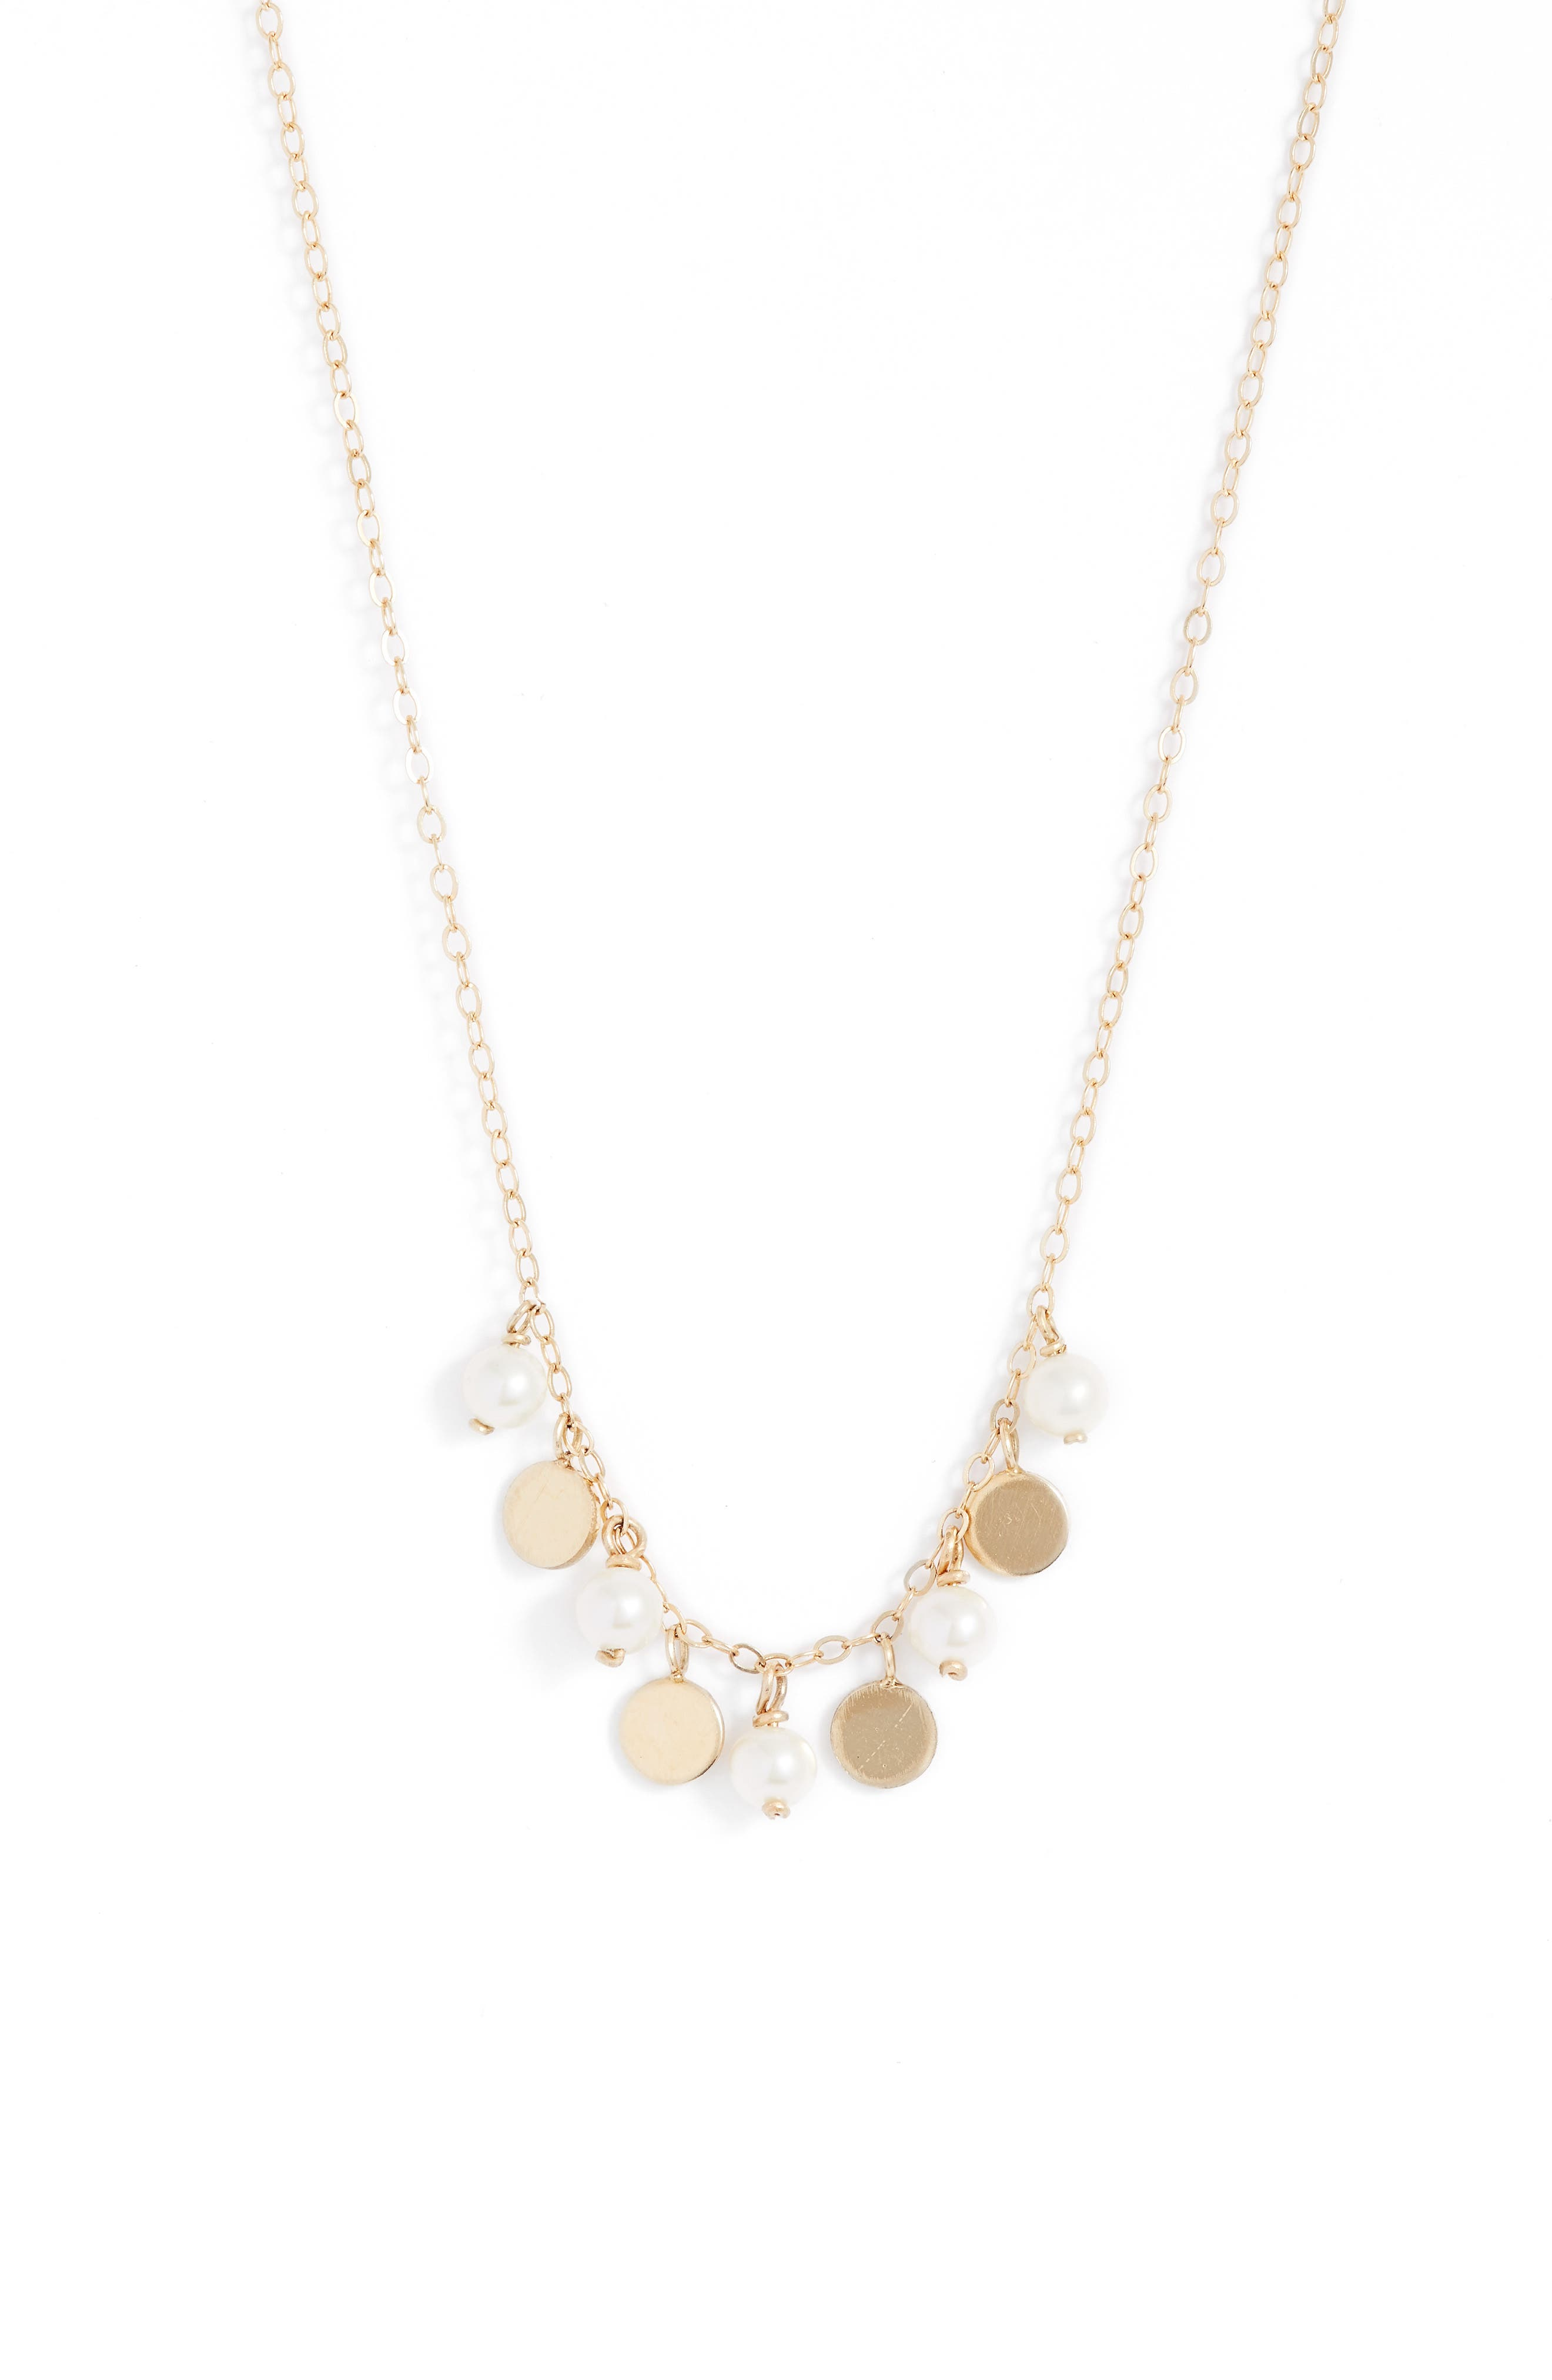 Confetti Pearl Gold Necklace,                             Main thumbnail 1, color,                             YELLOW GOLD/ WHITE PEARL